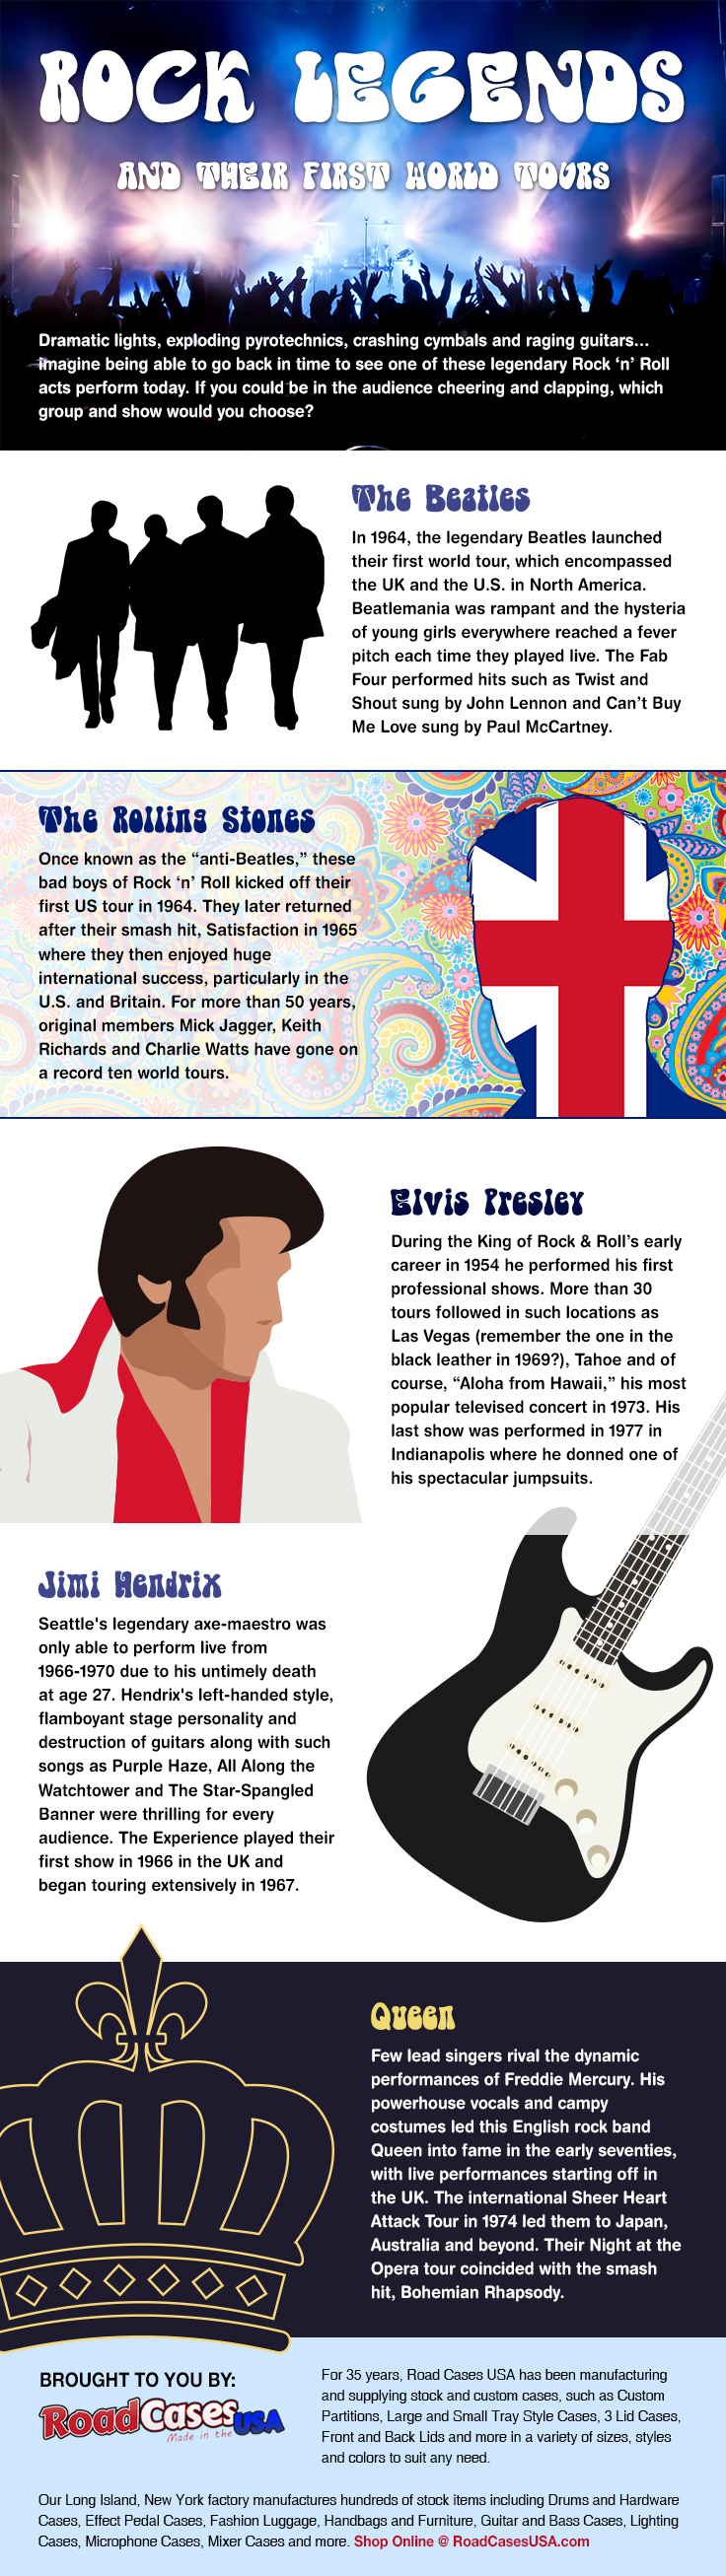 Rock Legends and Their First World Tours